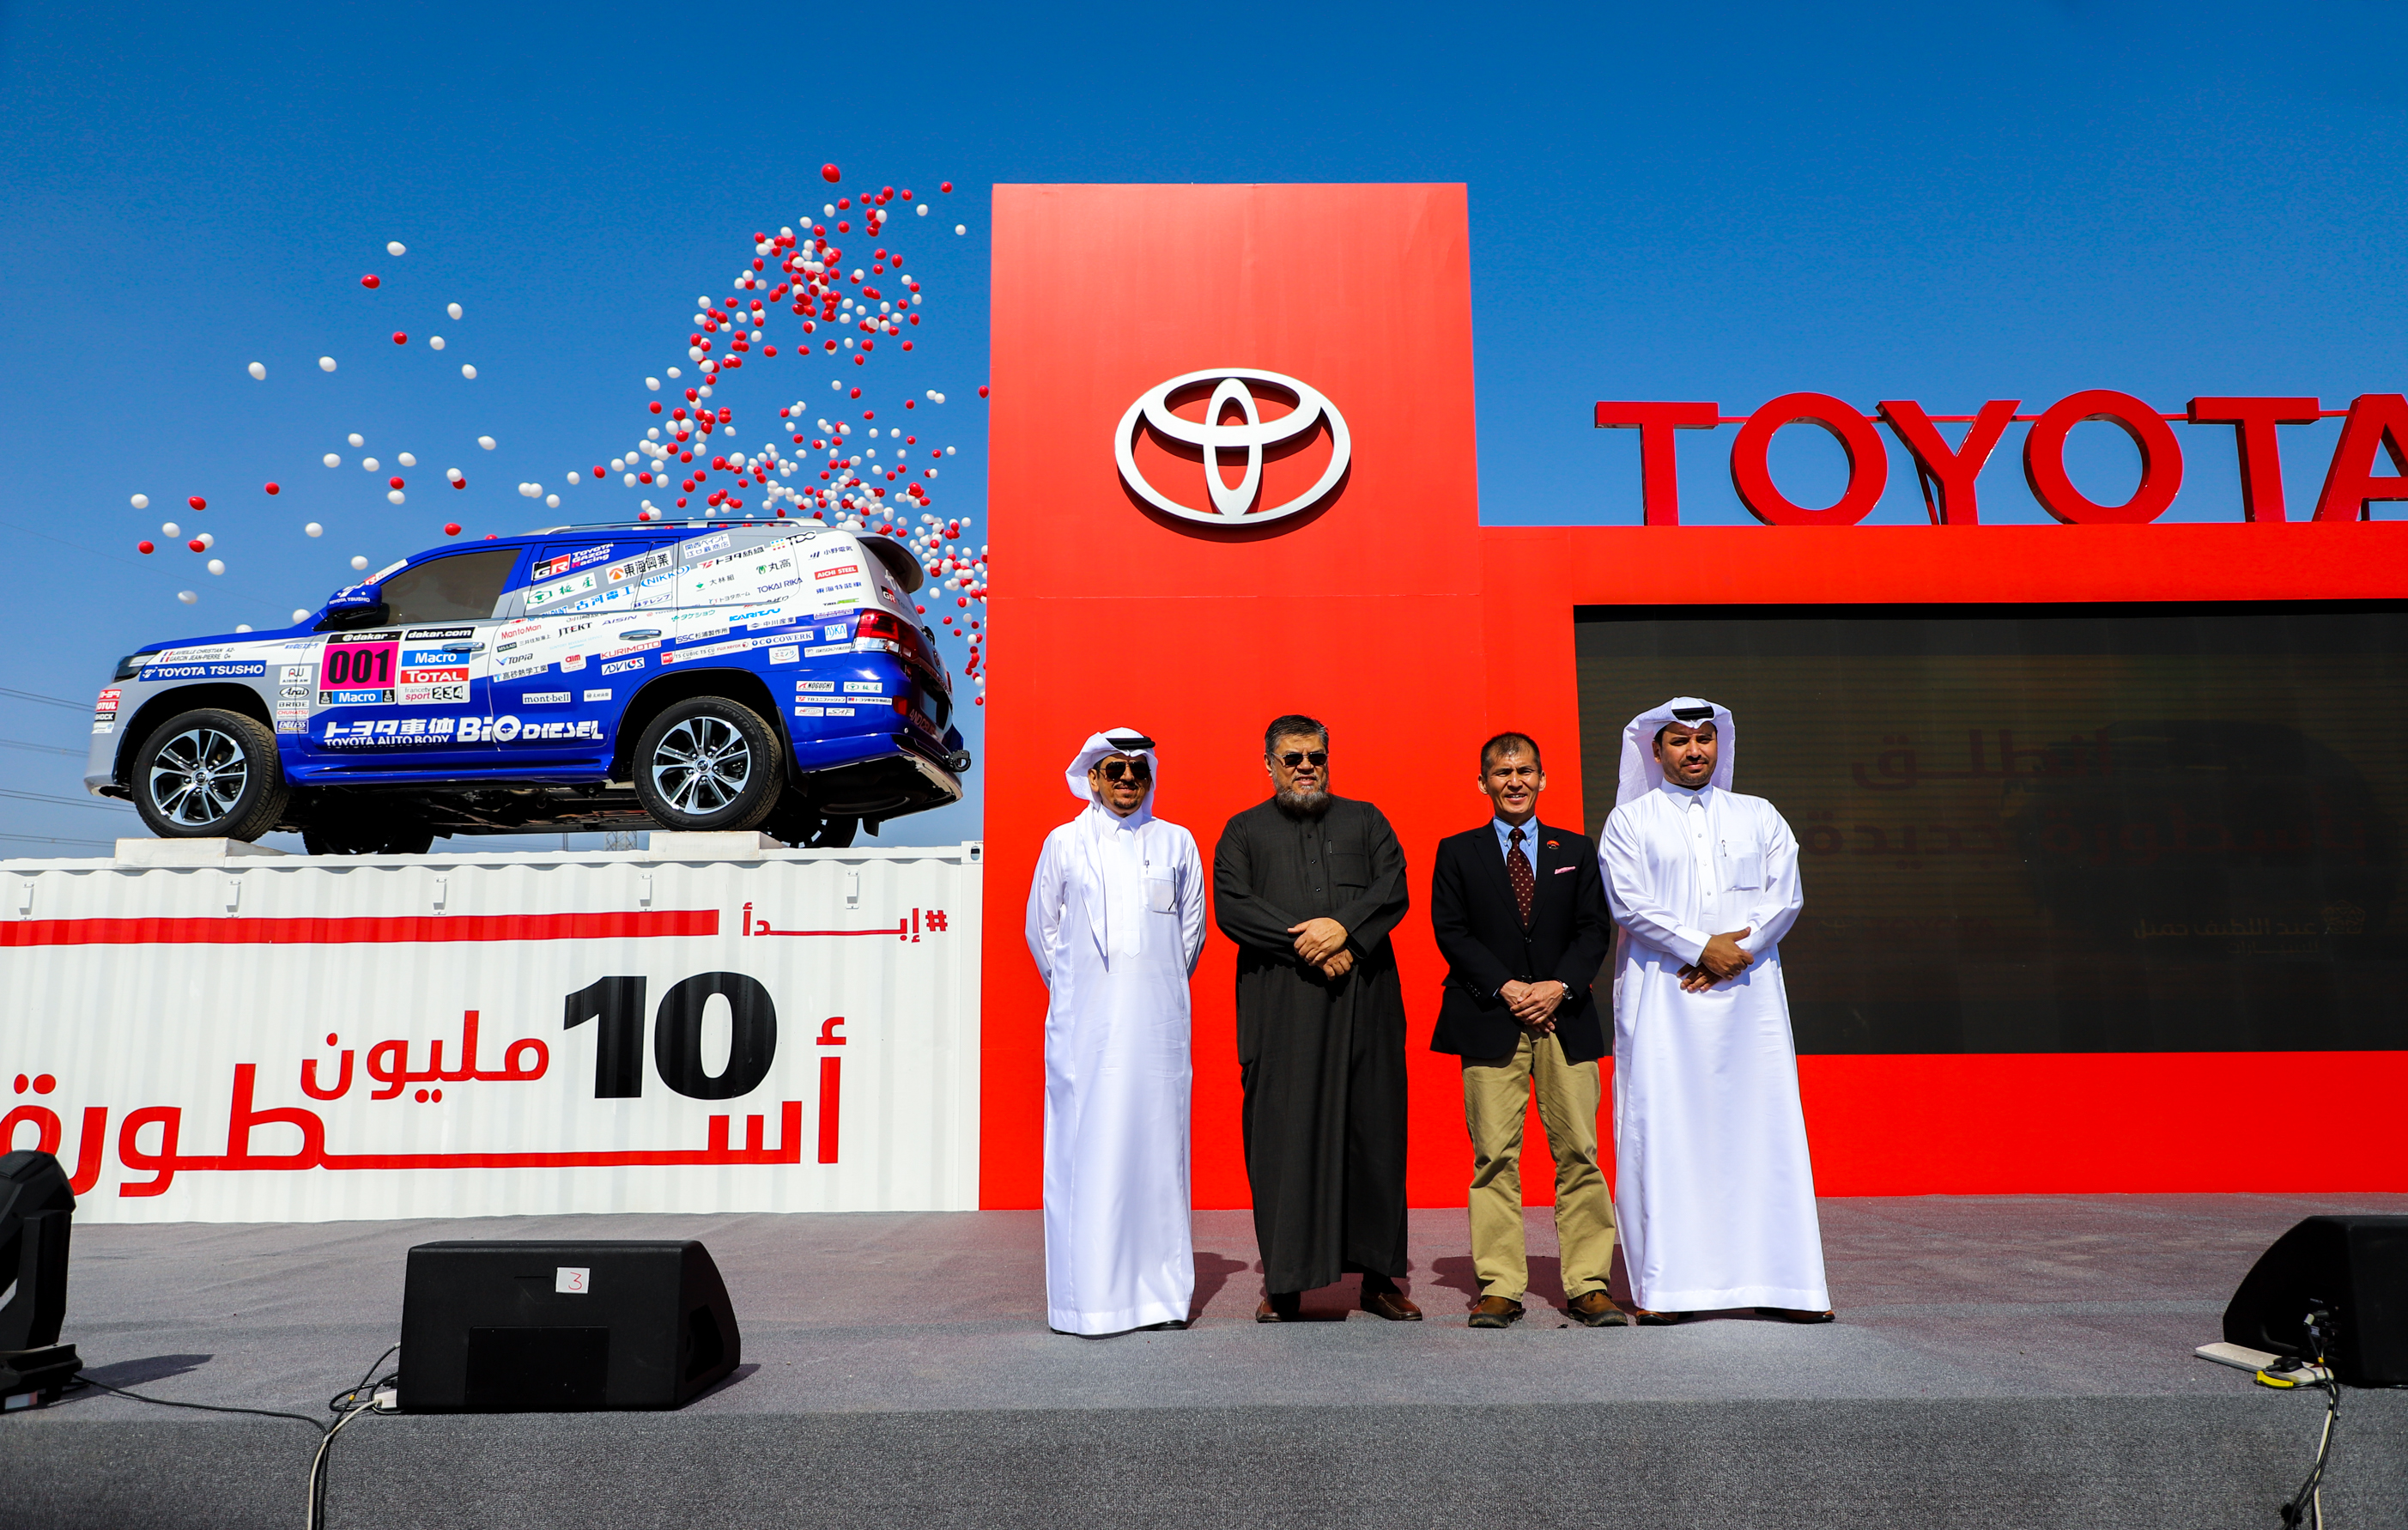 Celebratory Events to mark global sales of the Toyota Land Cruiser